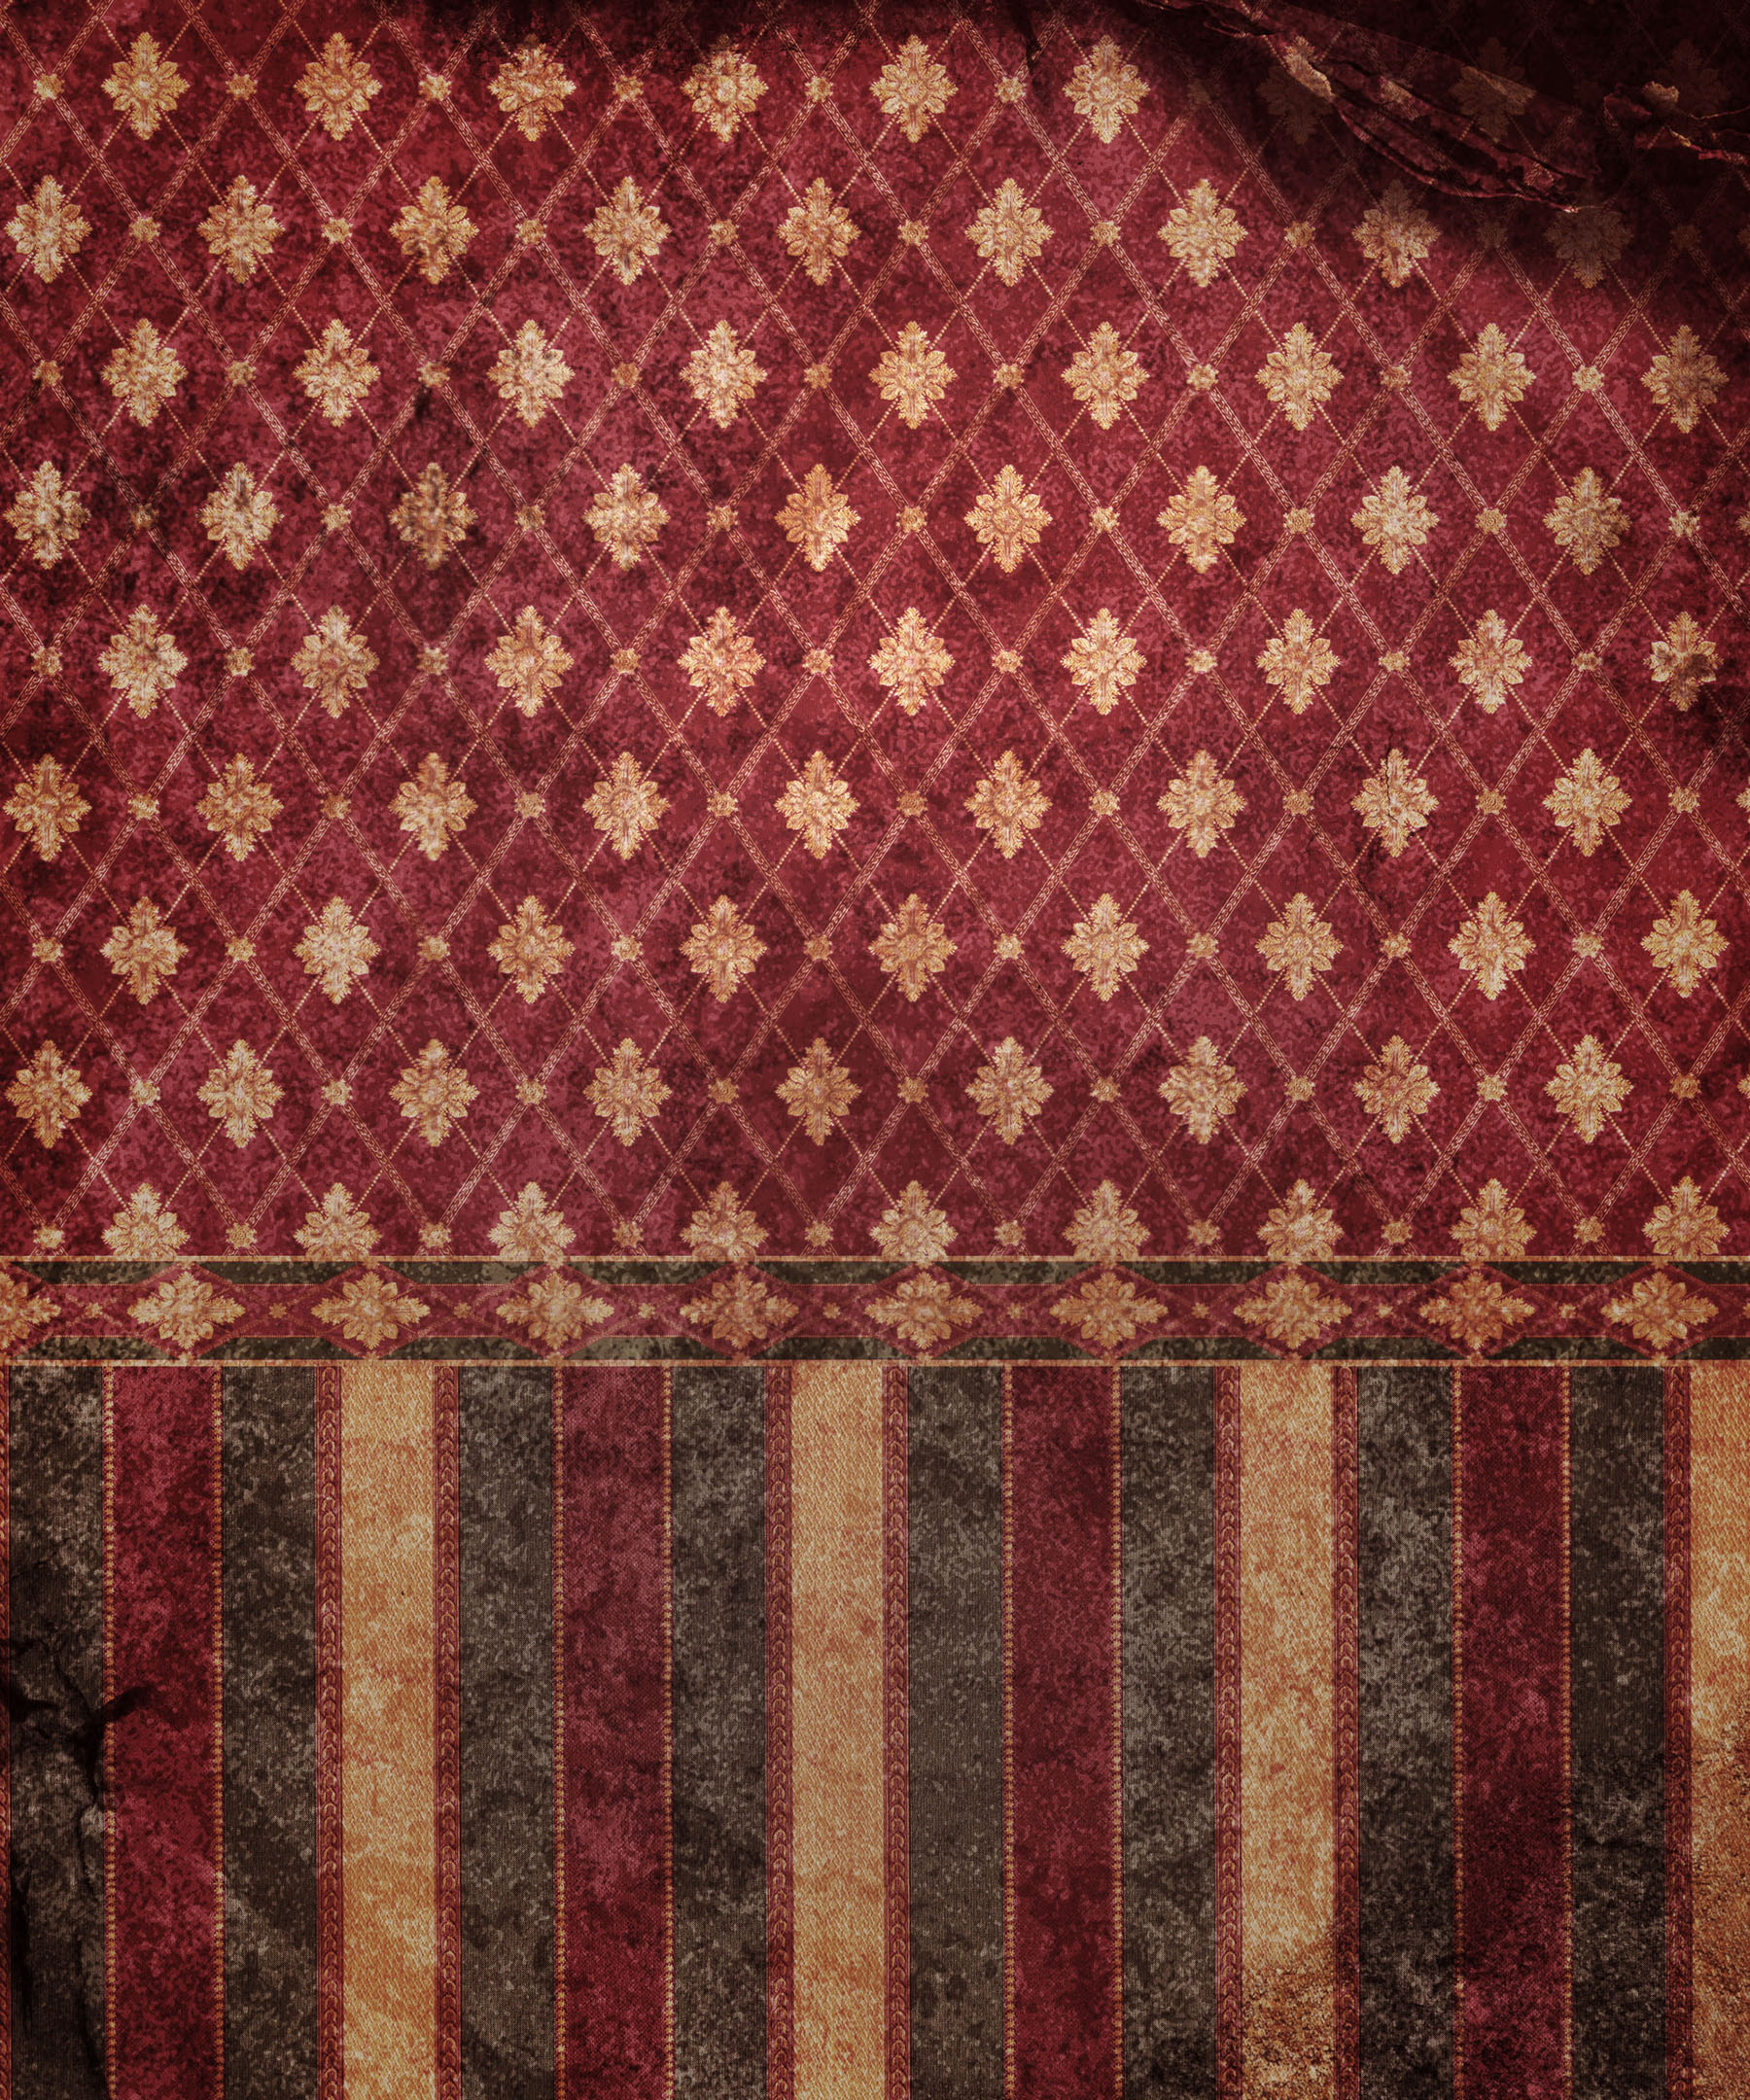 old european style wall wallpaper 12107 background